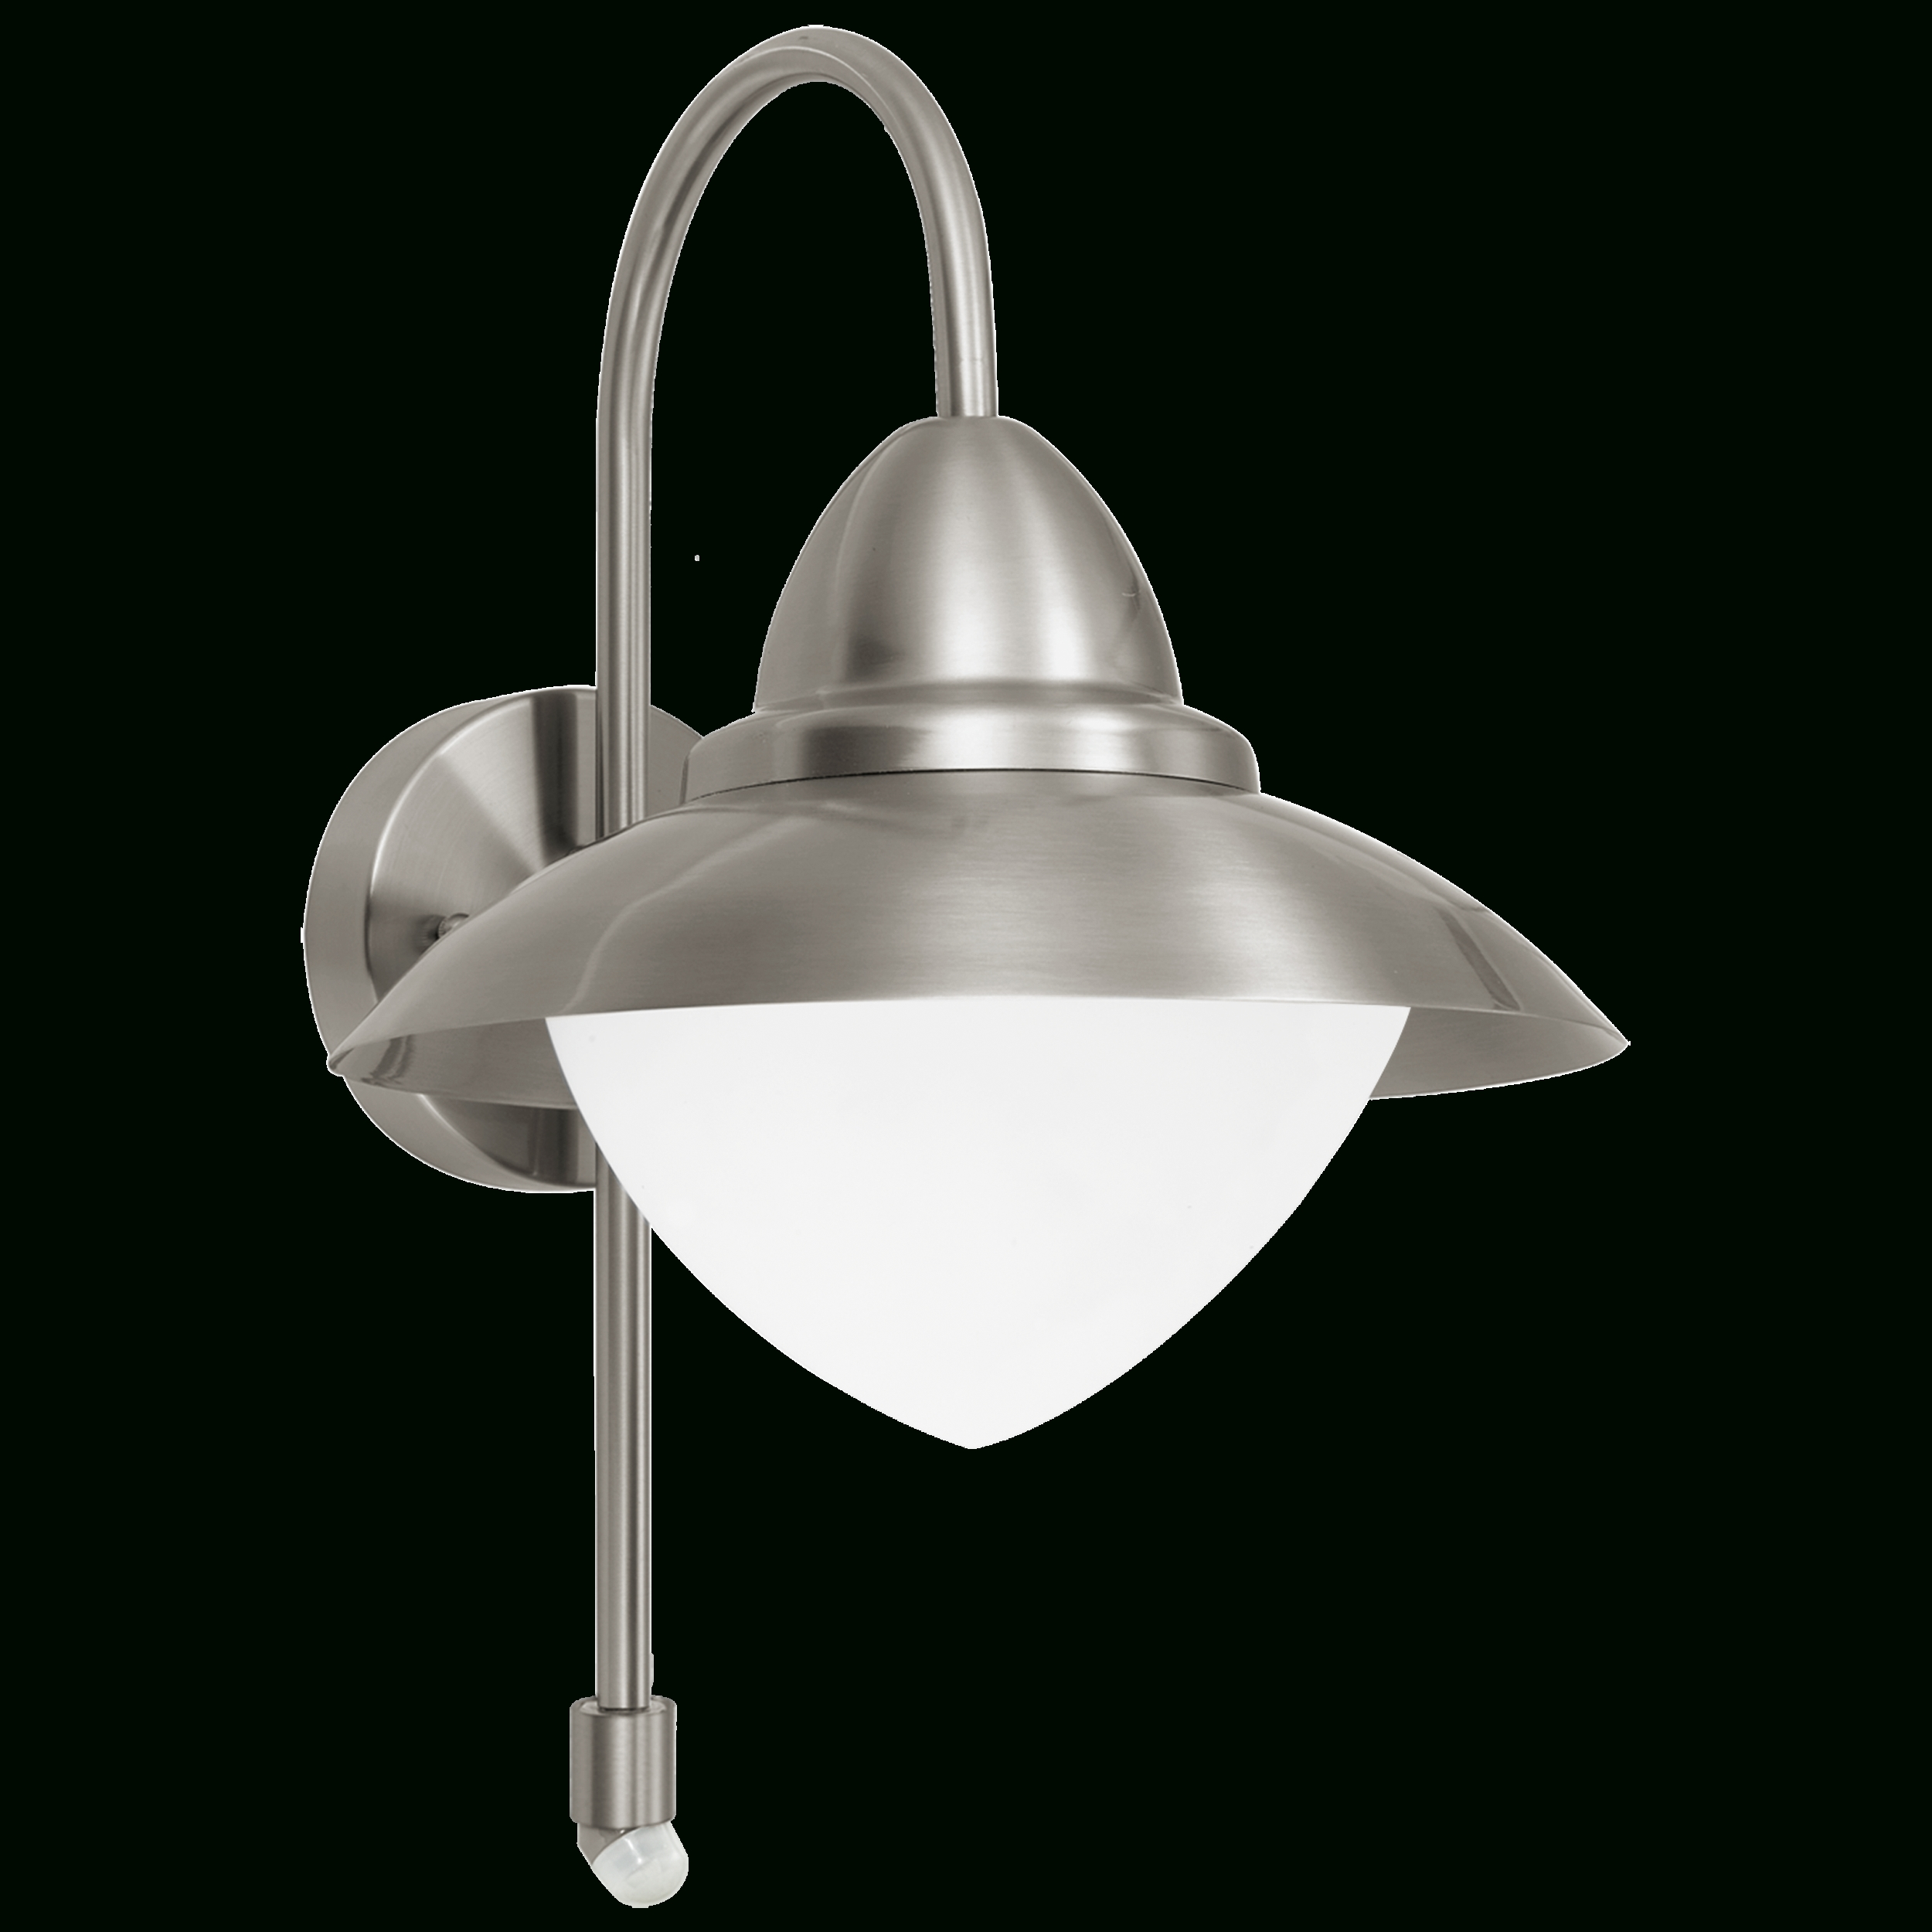 Most Current 87105 / Sidney / Outdoor Lighting / Main Collections / Products Within Eglo Lighting Sidney Outdoor Wall Lights With Motion Sensor (View 12 of 20)